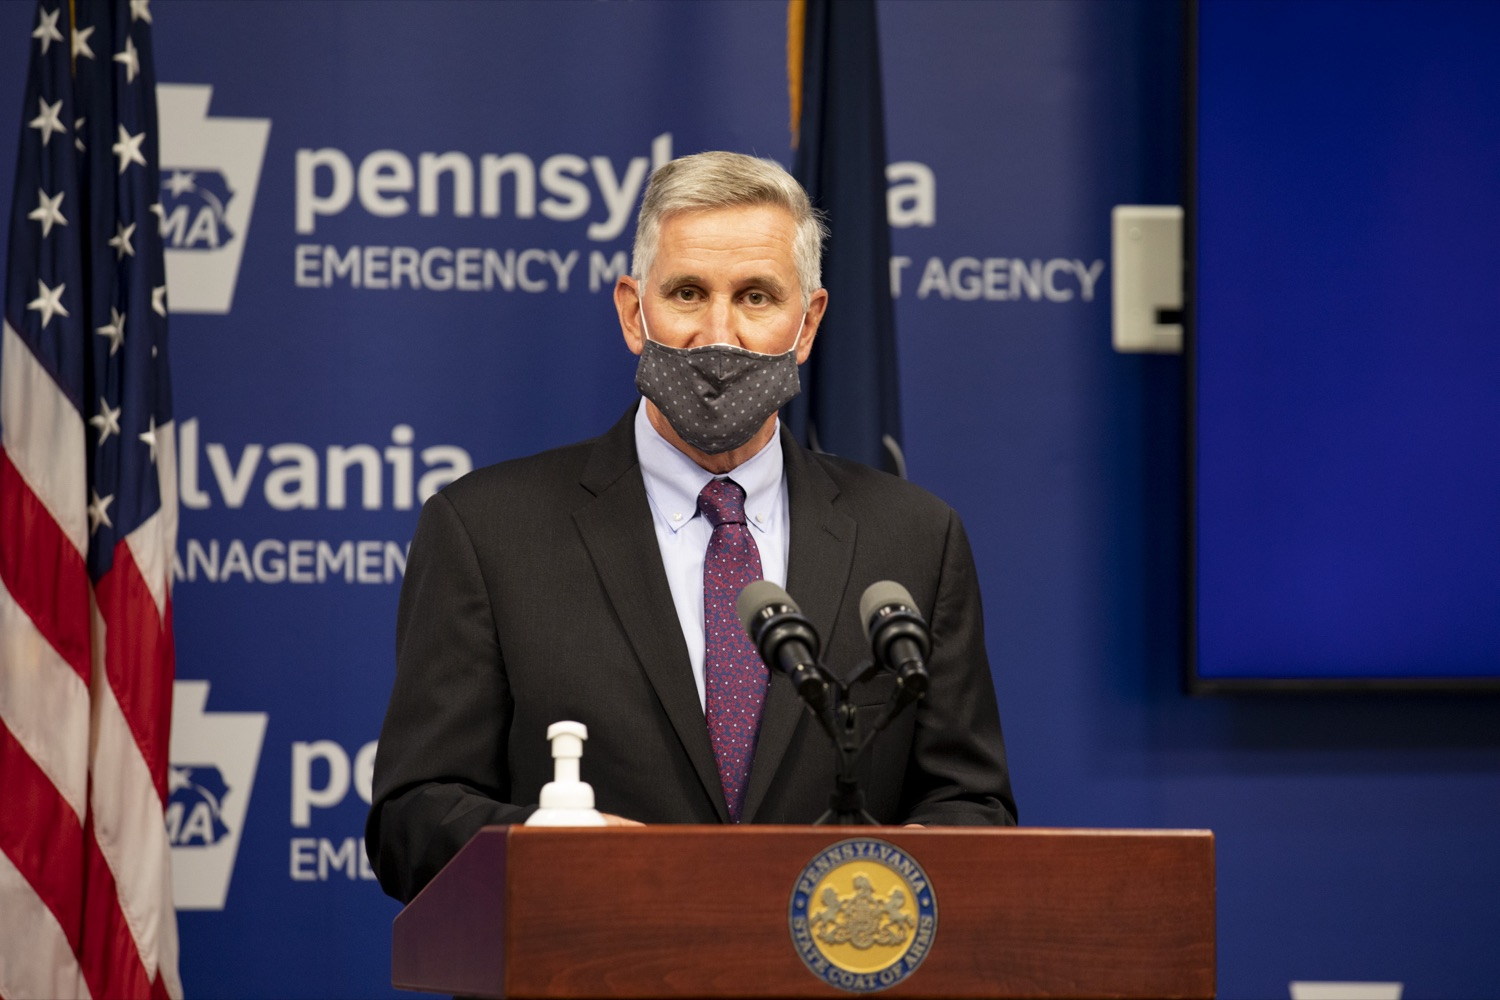 "<a href=""https://filesource.wostreaming.net/commonwealthofpa/photo/18722_agric_animalHealth_03.jpg"" target=""_blank"">⇣ Download Photo<br></a>Agriculture Secretary Russell Redding says Pennsylvania's animal agriculture industry relies on quick, coordinated emergency declaration and response, urging voters to consider this at the polls. Pennsylvania Emergency Management Agency in Harrisburg on May 4, 2021."